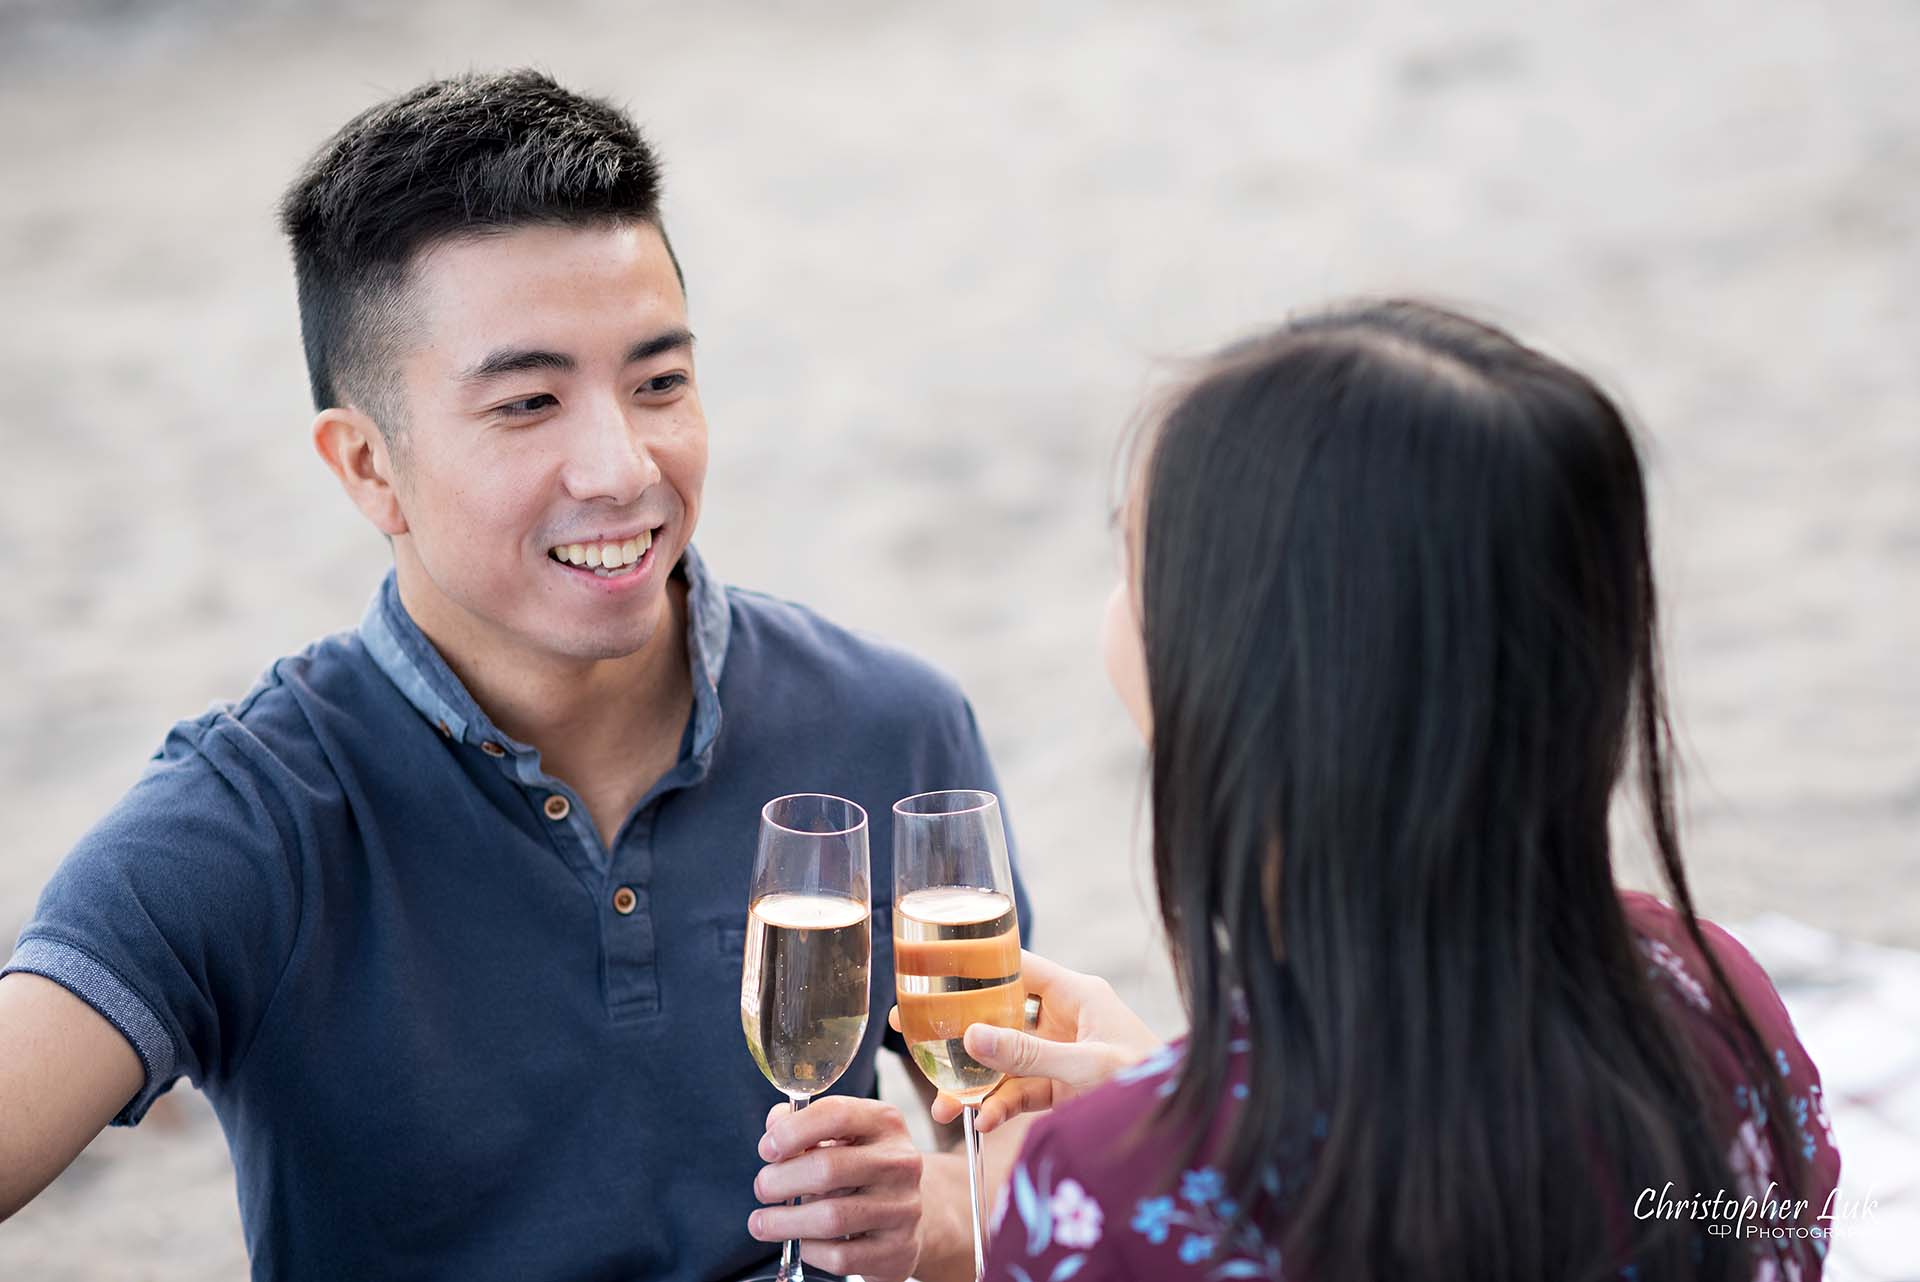 Christopher Luk Toronto Photographer Scarborough Bluffs Beach Park Sunset Surprise Wedding Marriage Engagement Proposal Candid Natural Photojournalistic Bride Groom Picnic Blanket Basket Teddy Bears Champagne Glasses Flutes Drinking Together Smile